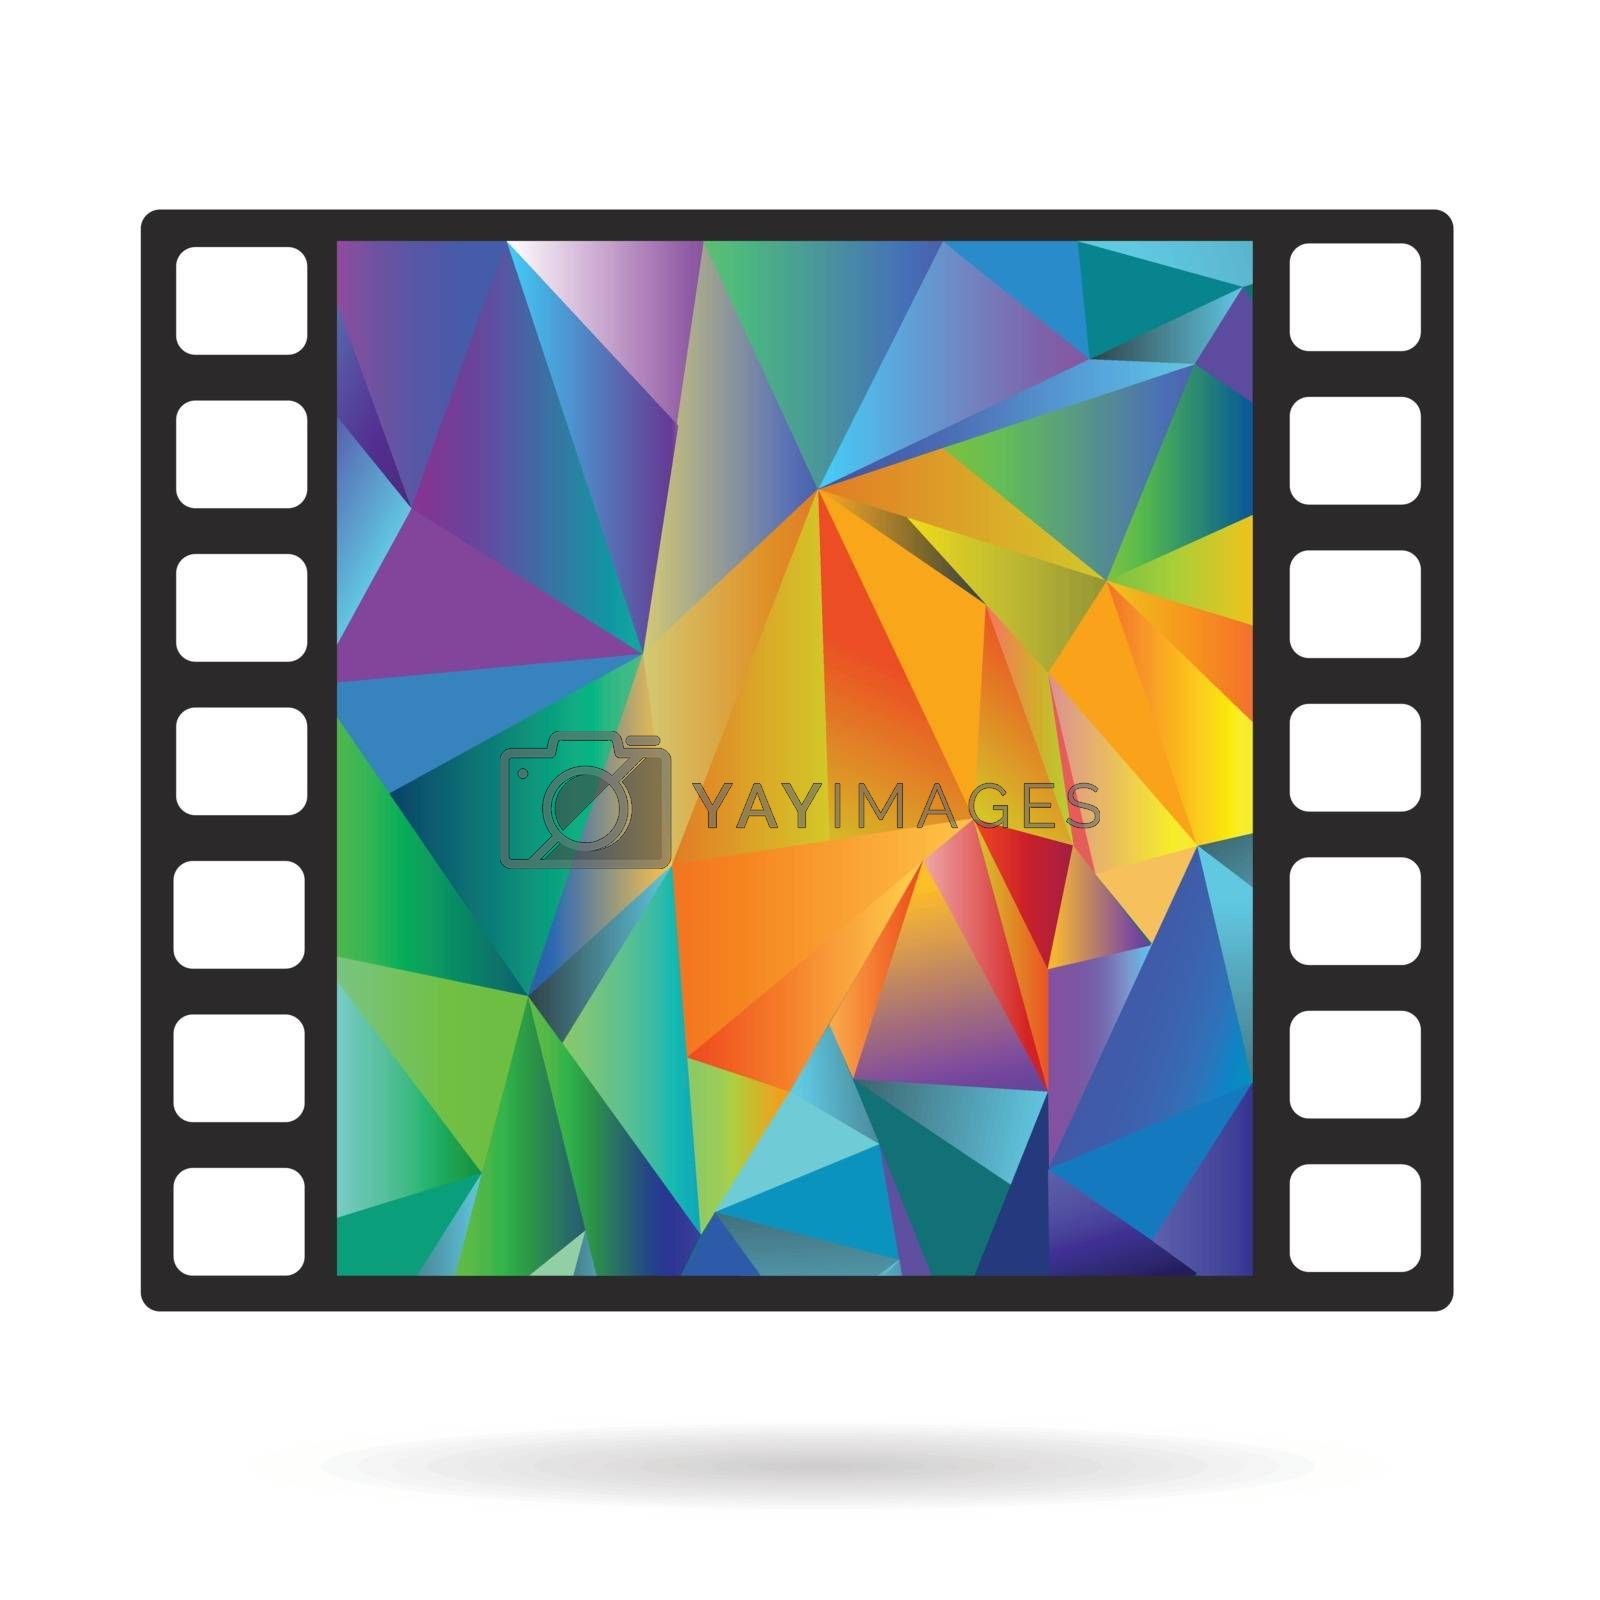 Royalty free image of Old film strip by valeo5